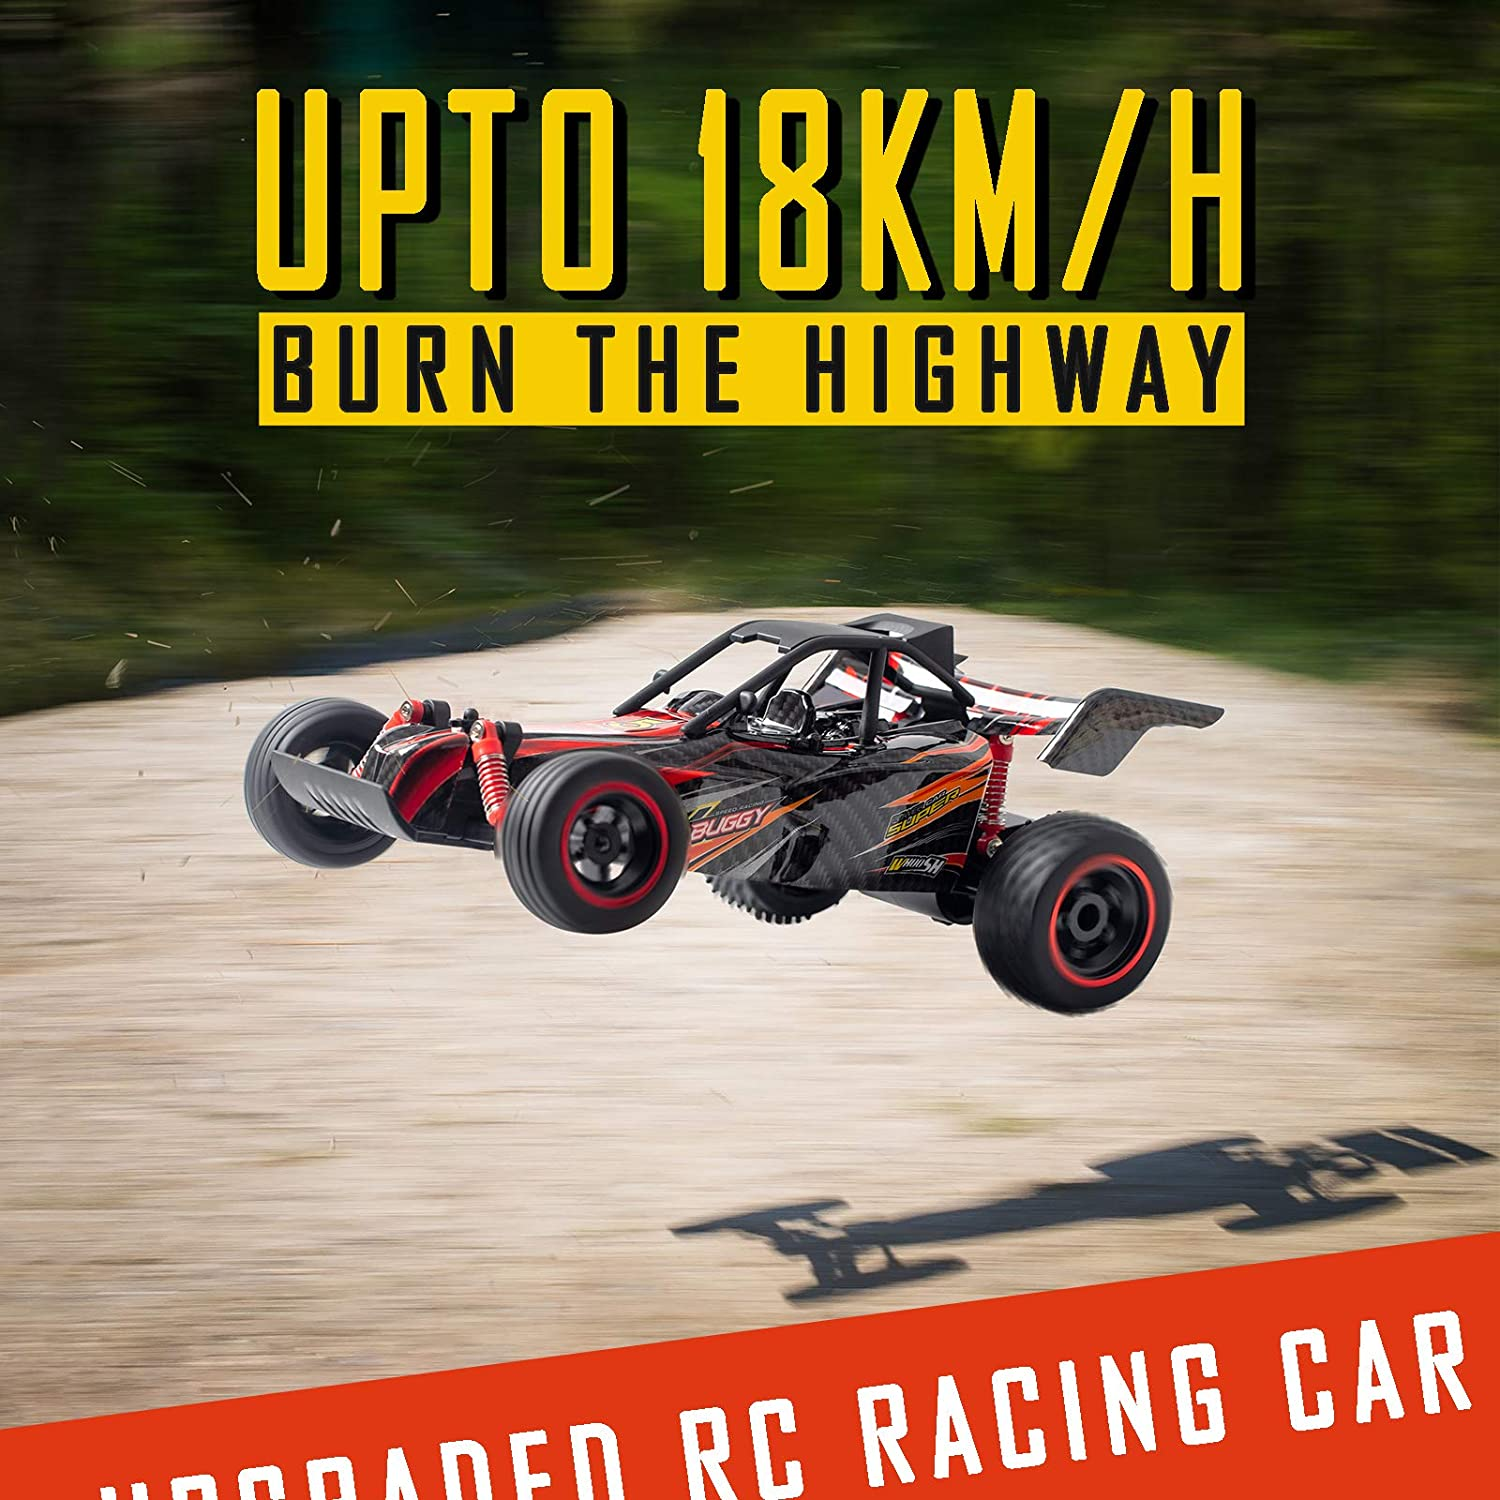 INVINZER Remote Control Racing Car 1:16 High Speed RC Car for Boys 2WD RC Drift Race Car with 2 Batteries for 40 Mins Play Toy Car Gift for Kids